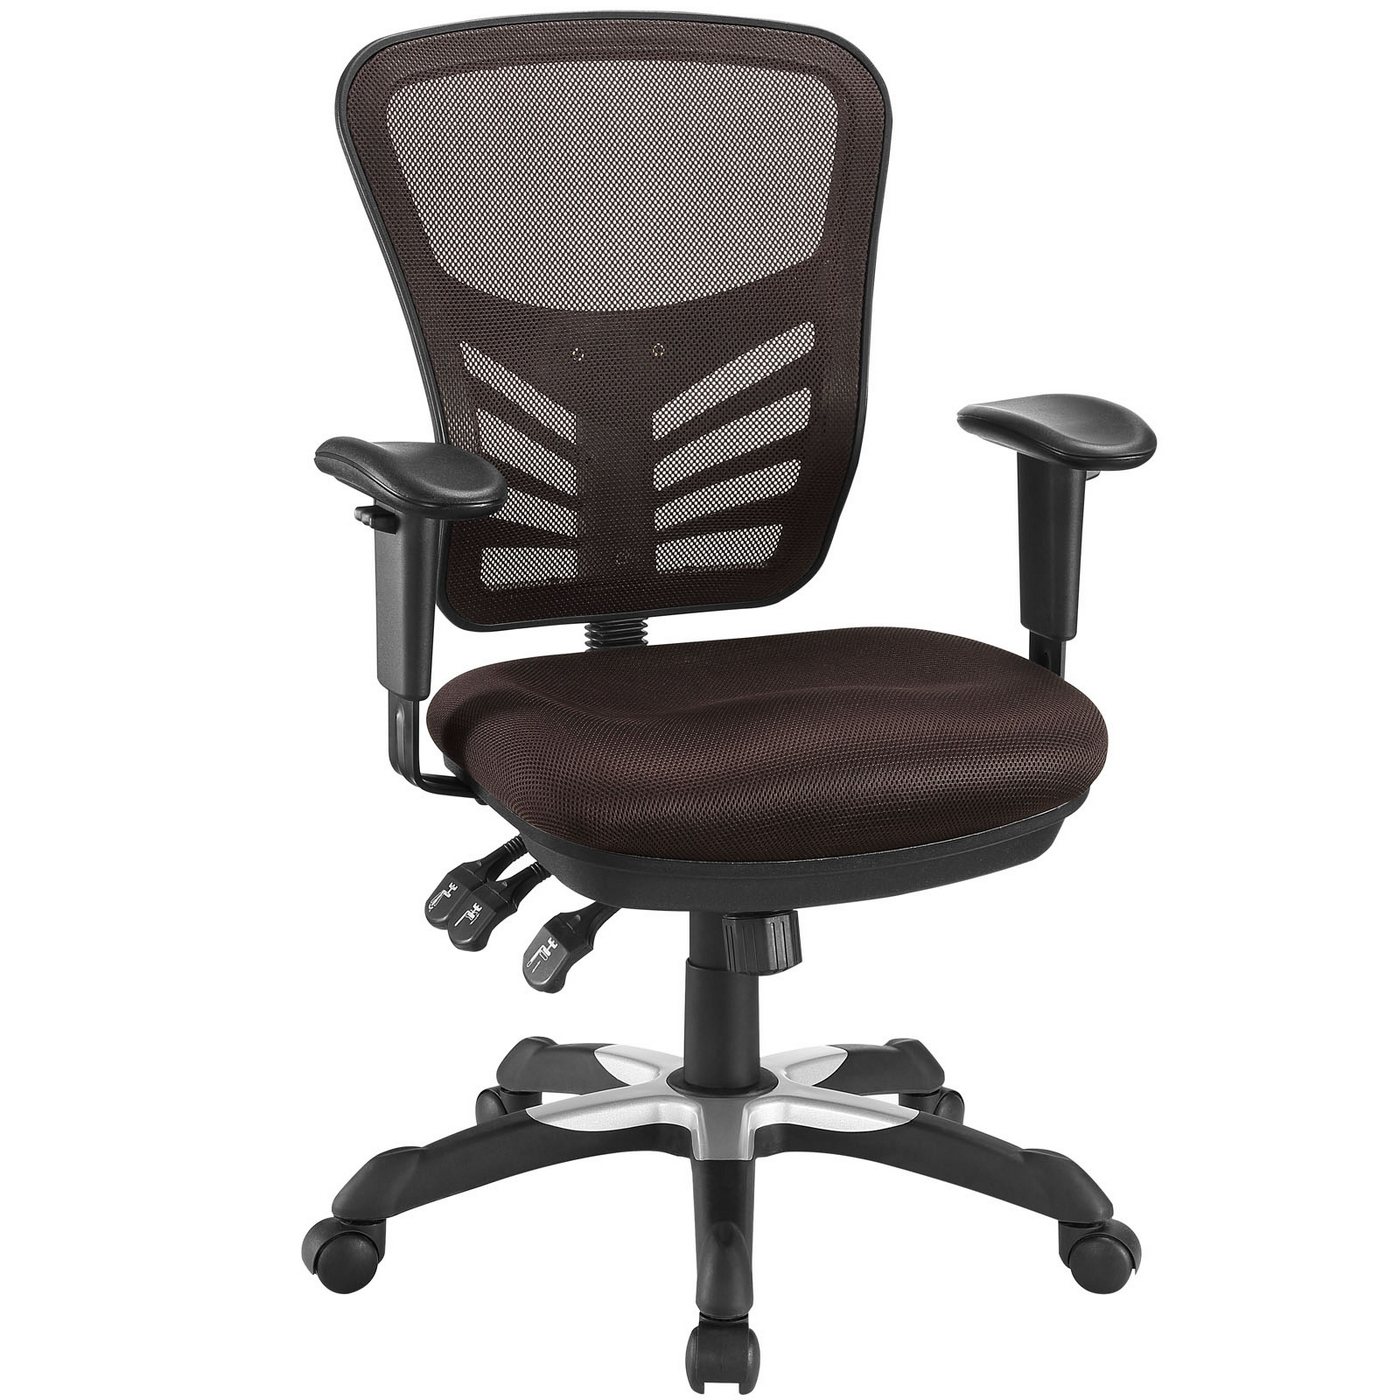 brown office chairs linen dining chair covers australia articulate modern adjustable ergonomic mesh